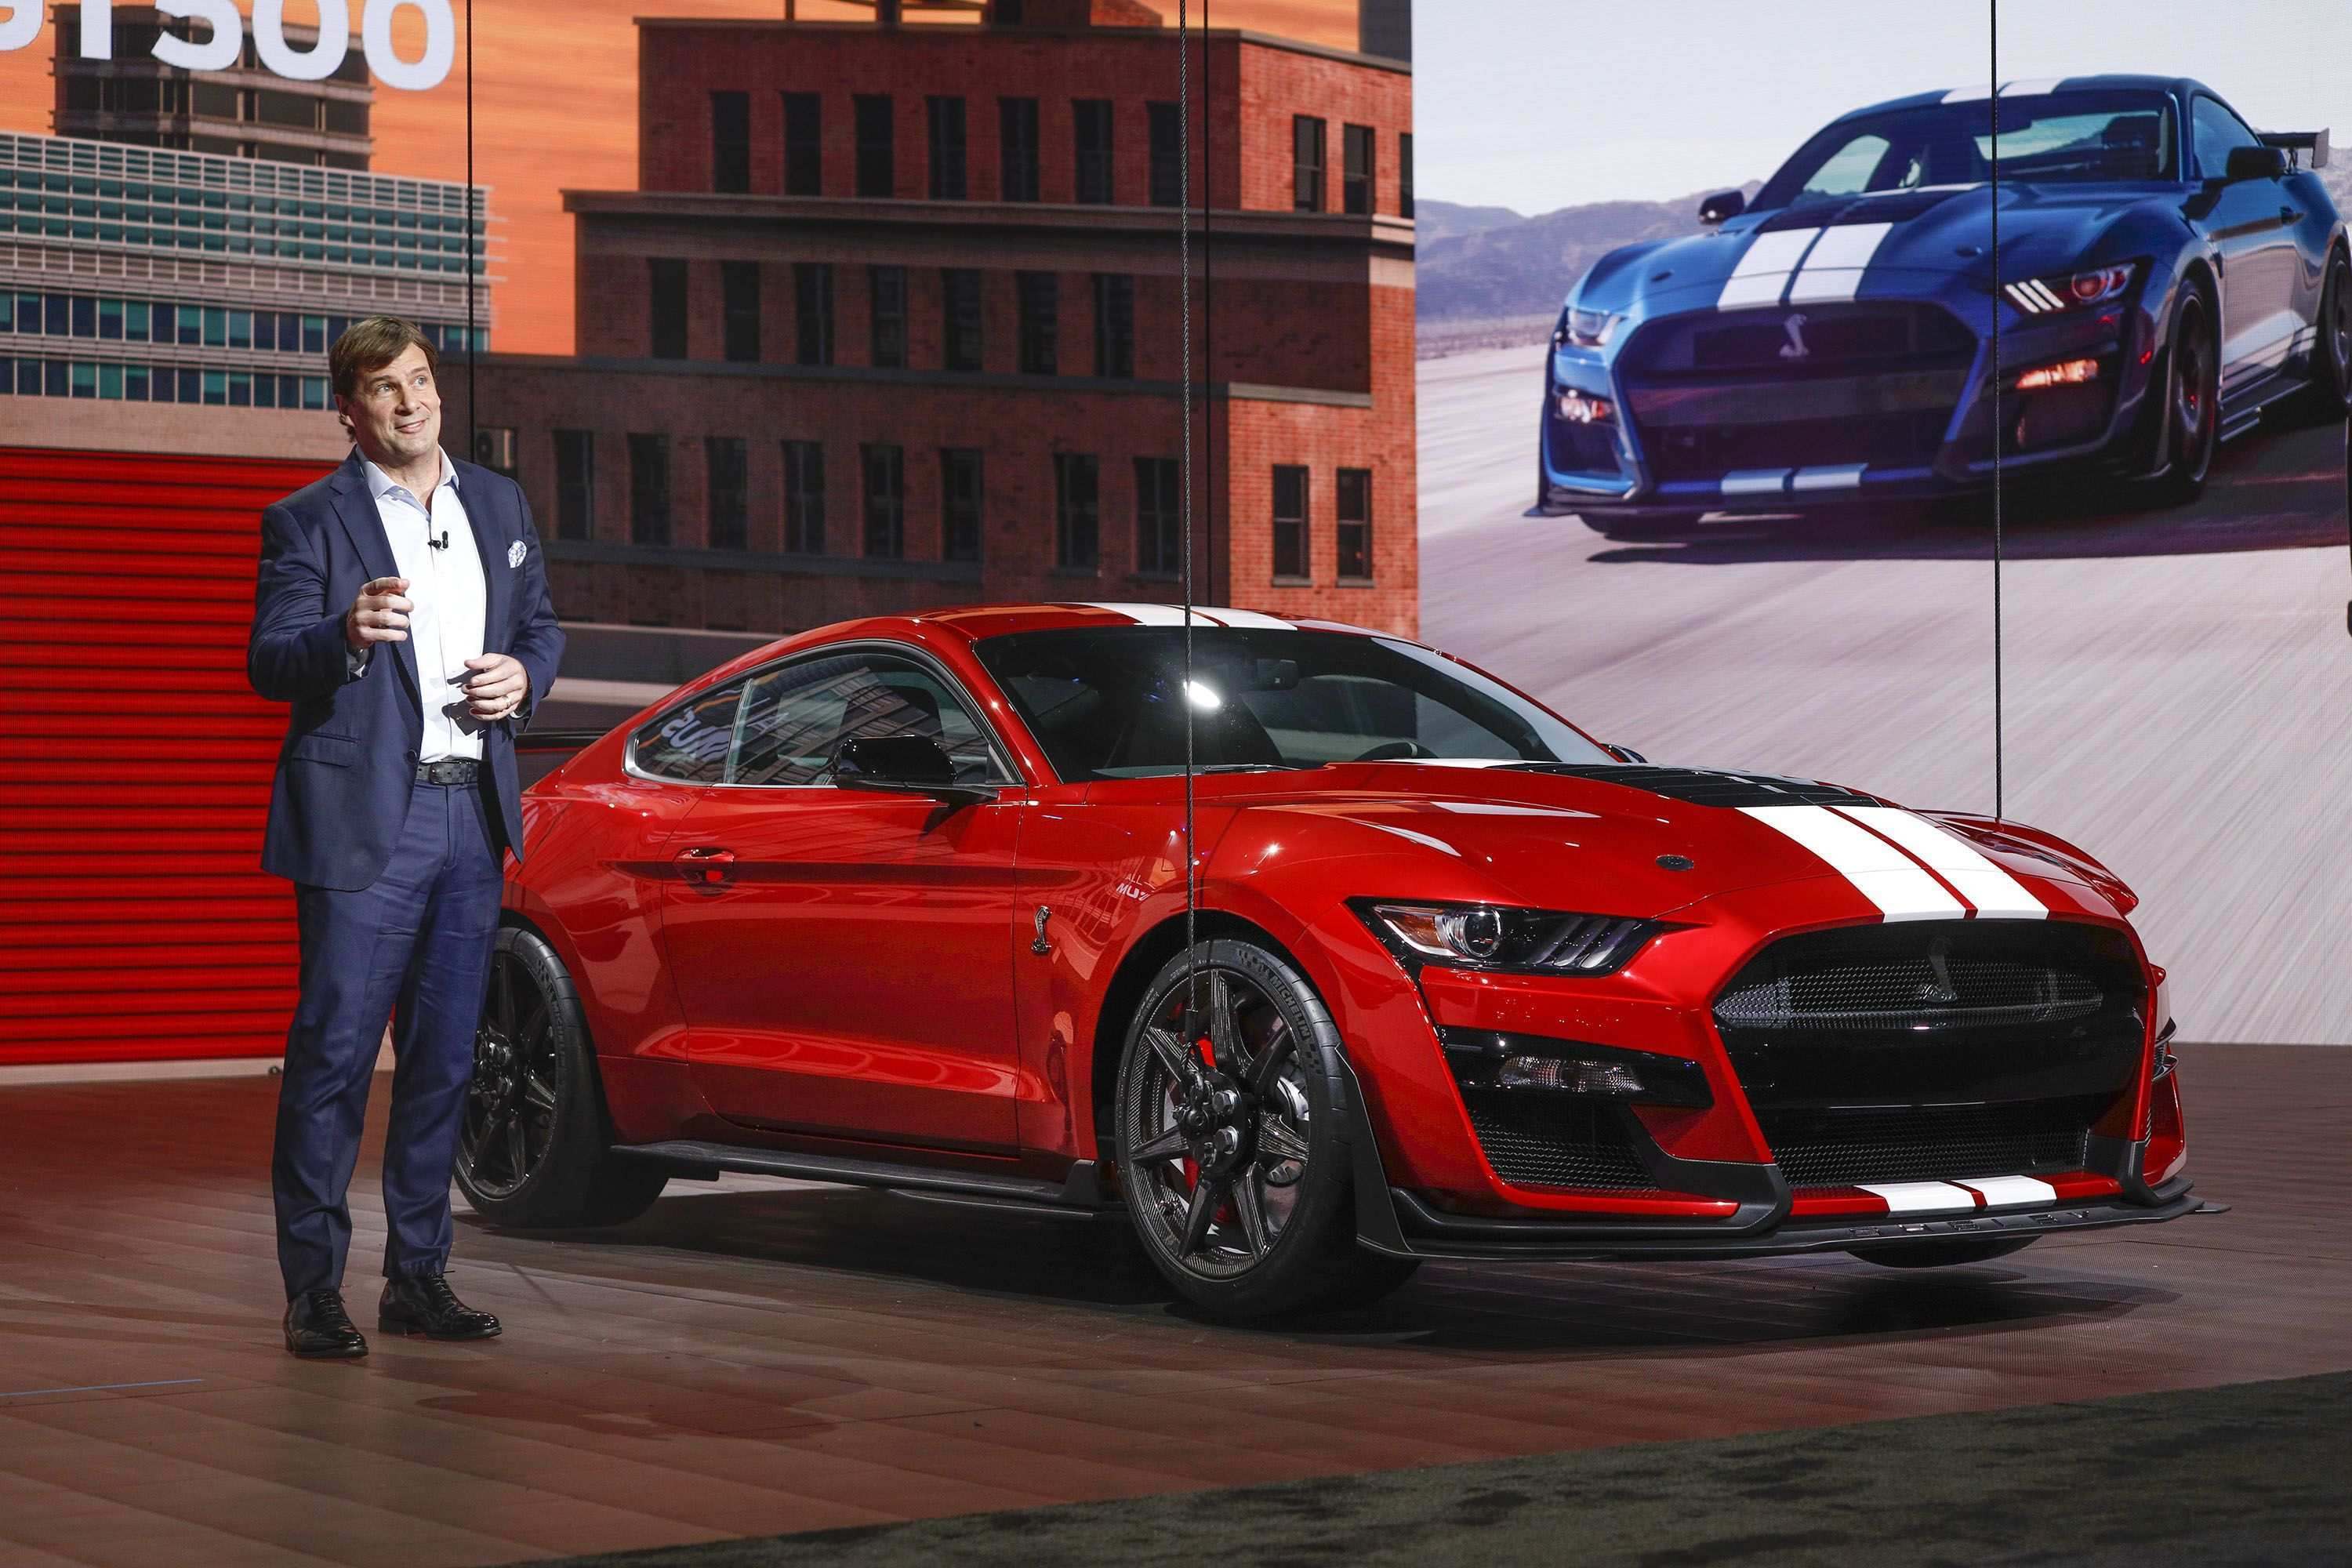 15 All New 2019 Mustang Gt500 Price And Release Date